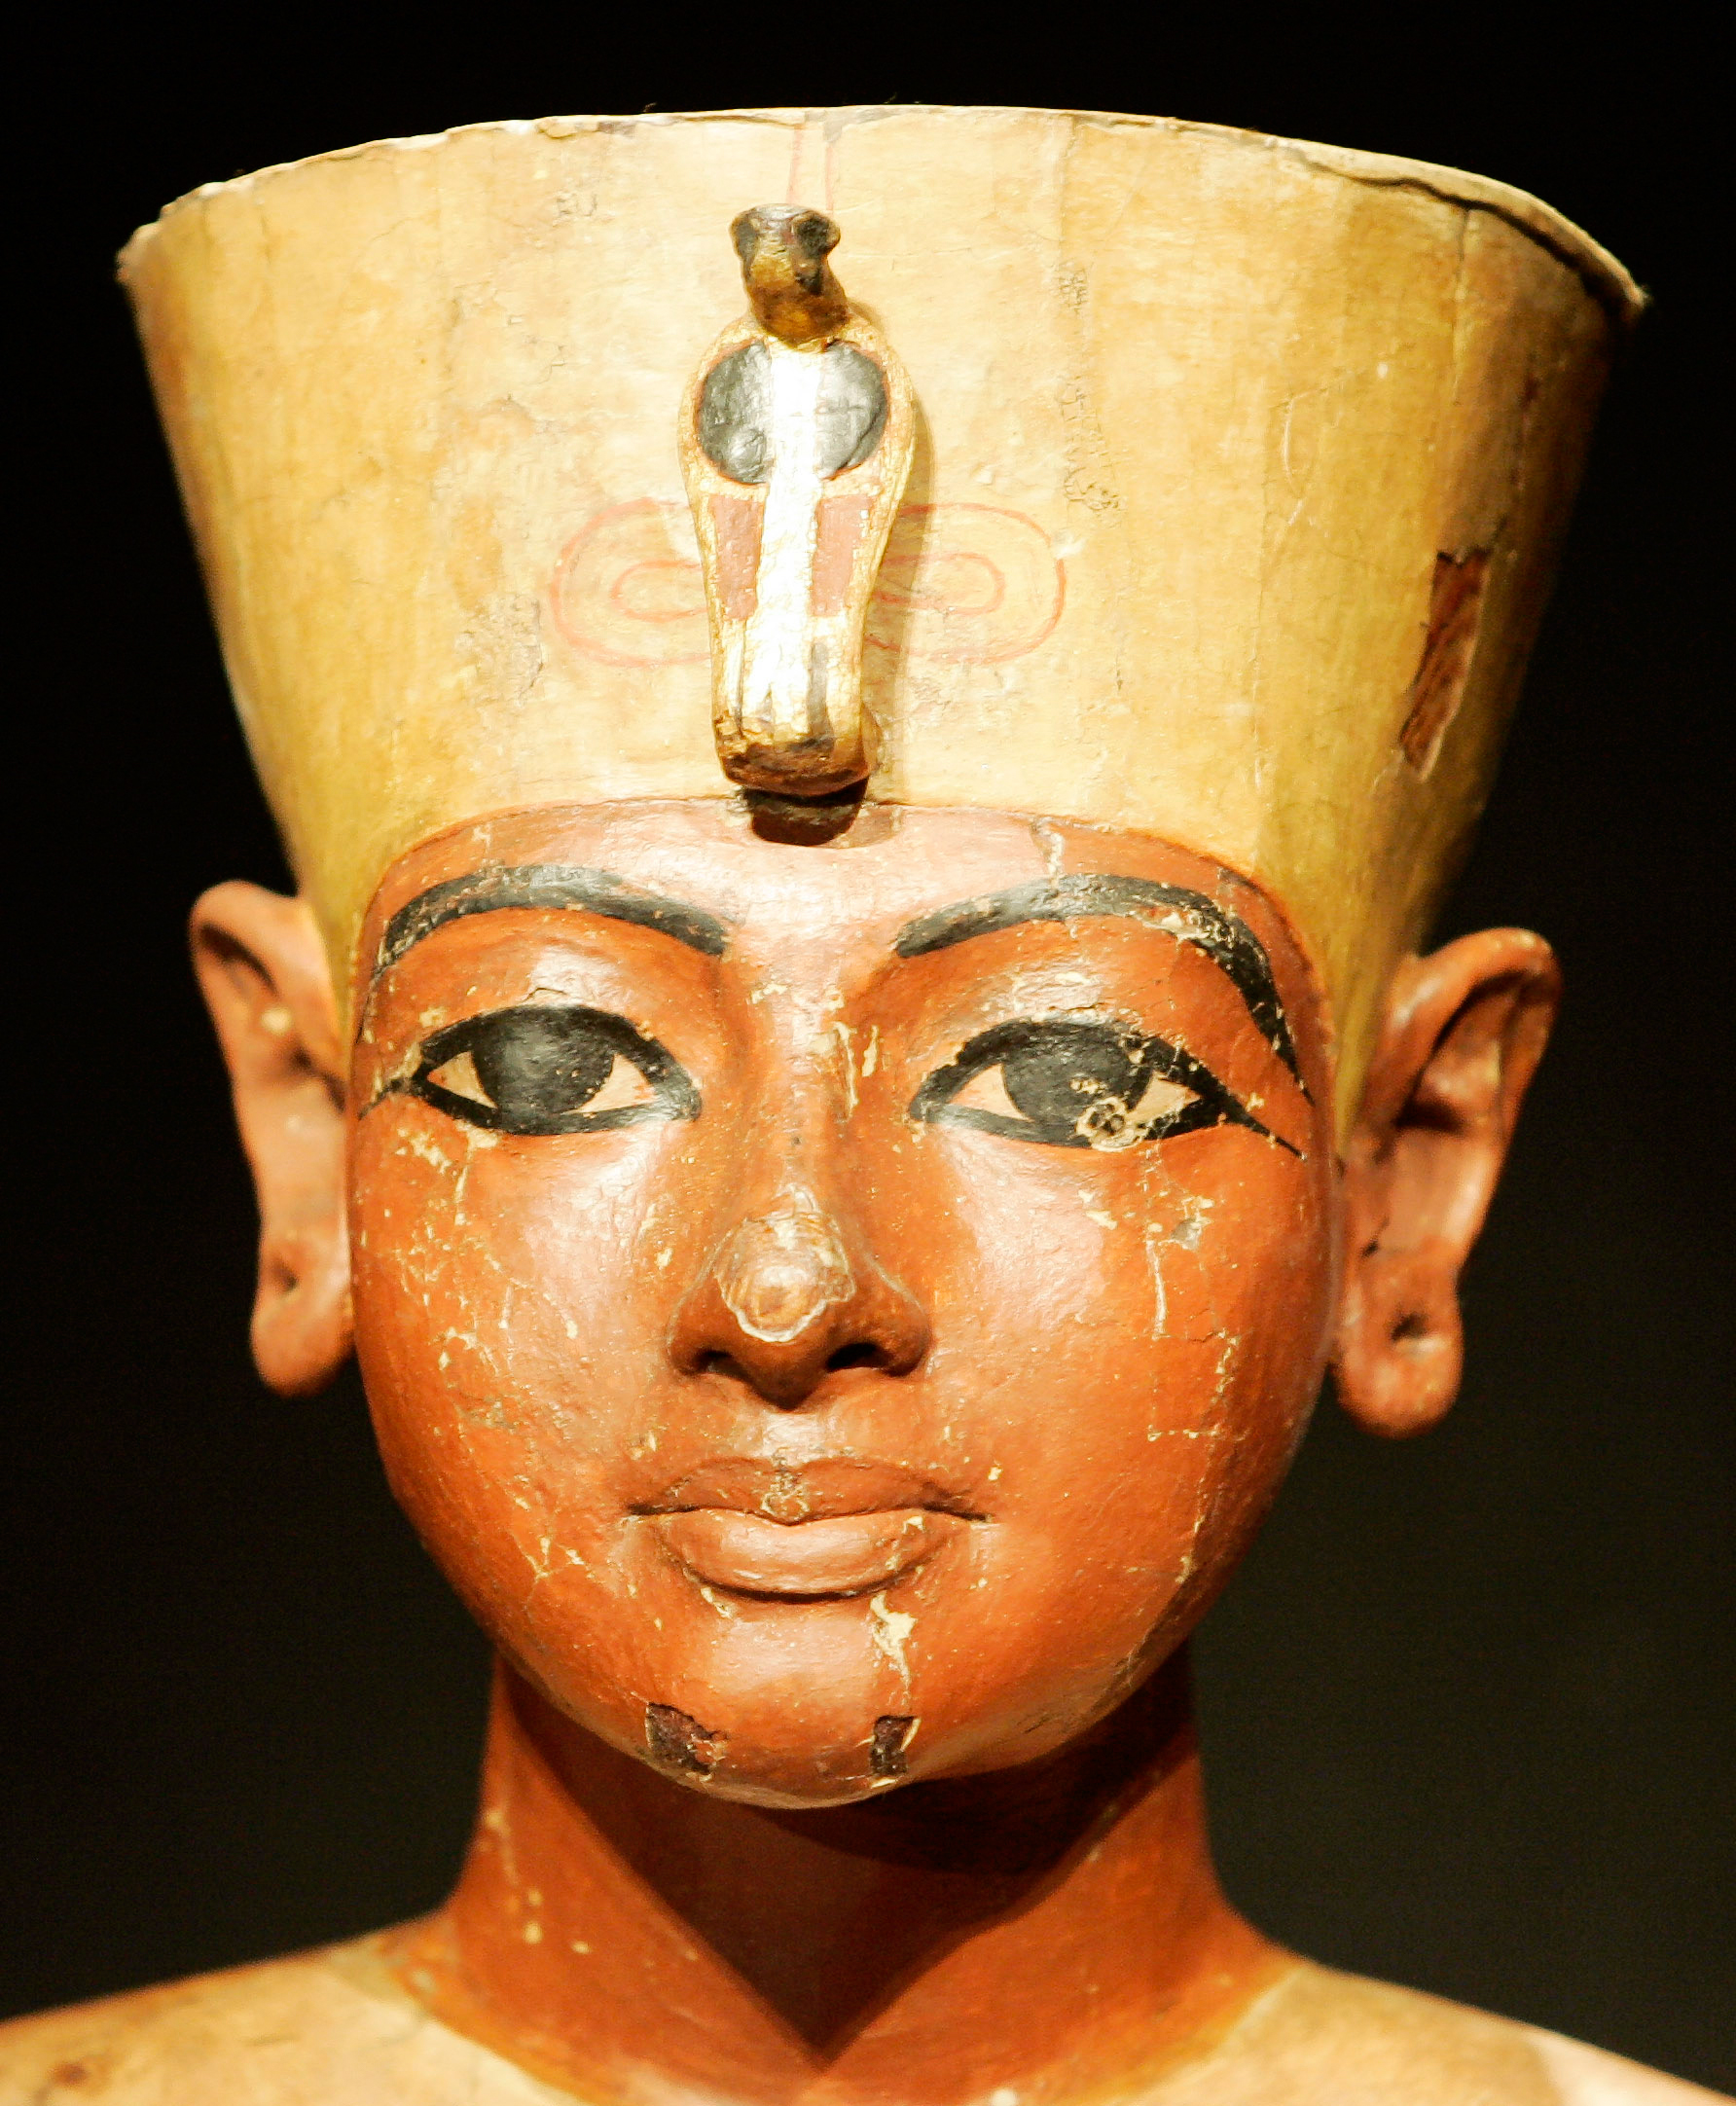 king tut essays Learn about tutankhamun, the boy king of ancient egypt, whose mummy was discovered in the valley of the kings by archaeologist howard carter more at biographycom.